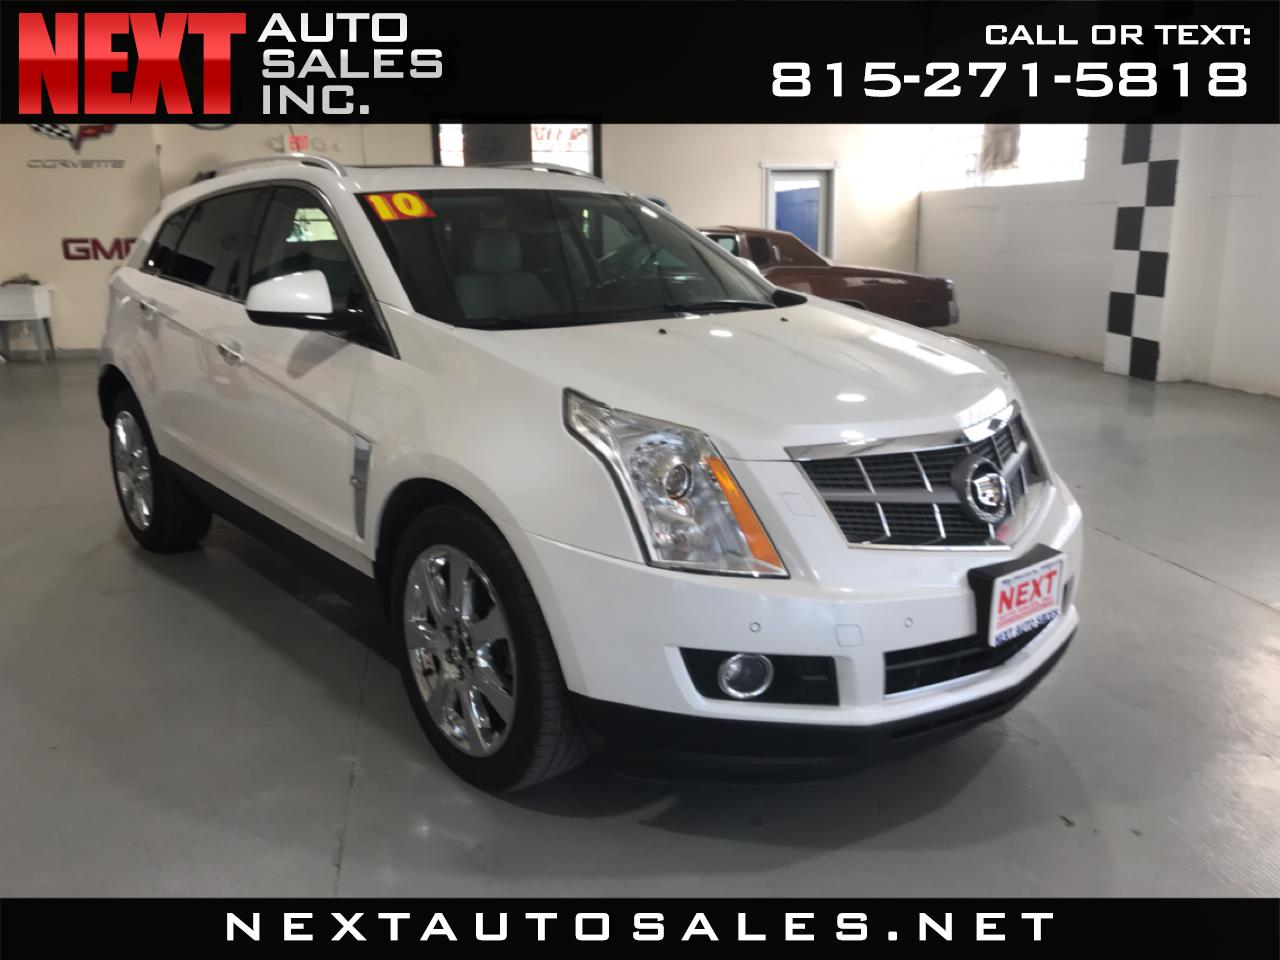 2010 Cadillac SRX AWD 4dr Turbo Premium Collection